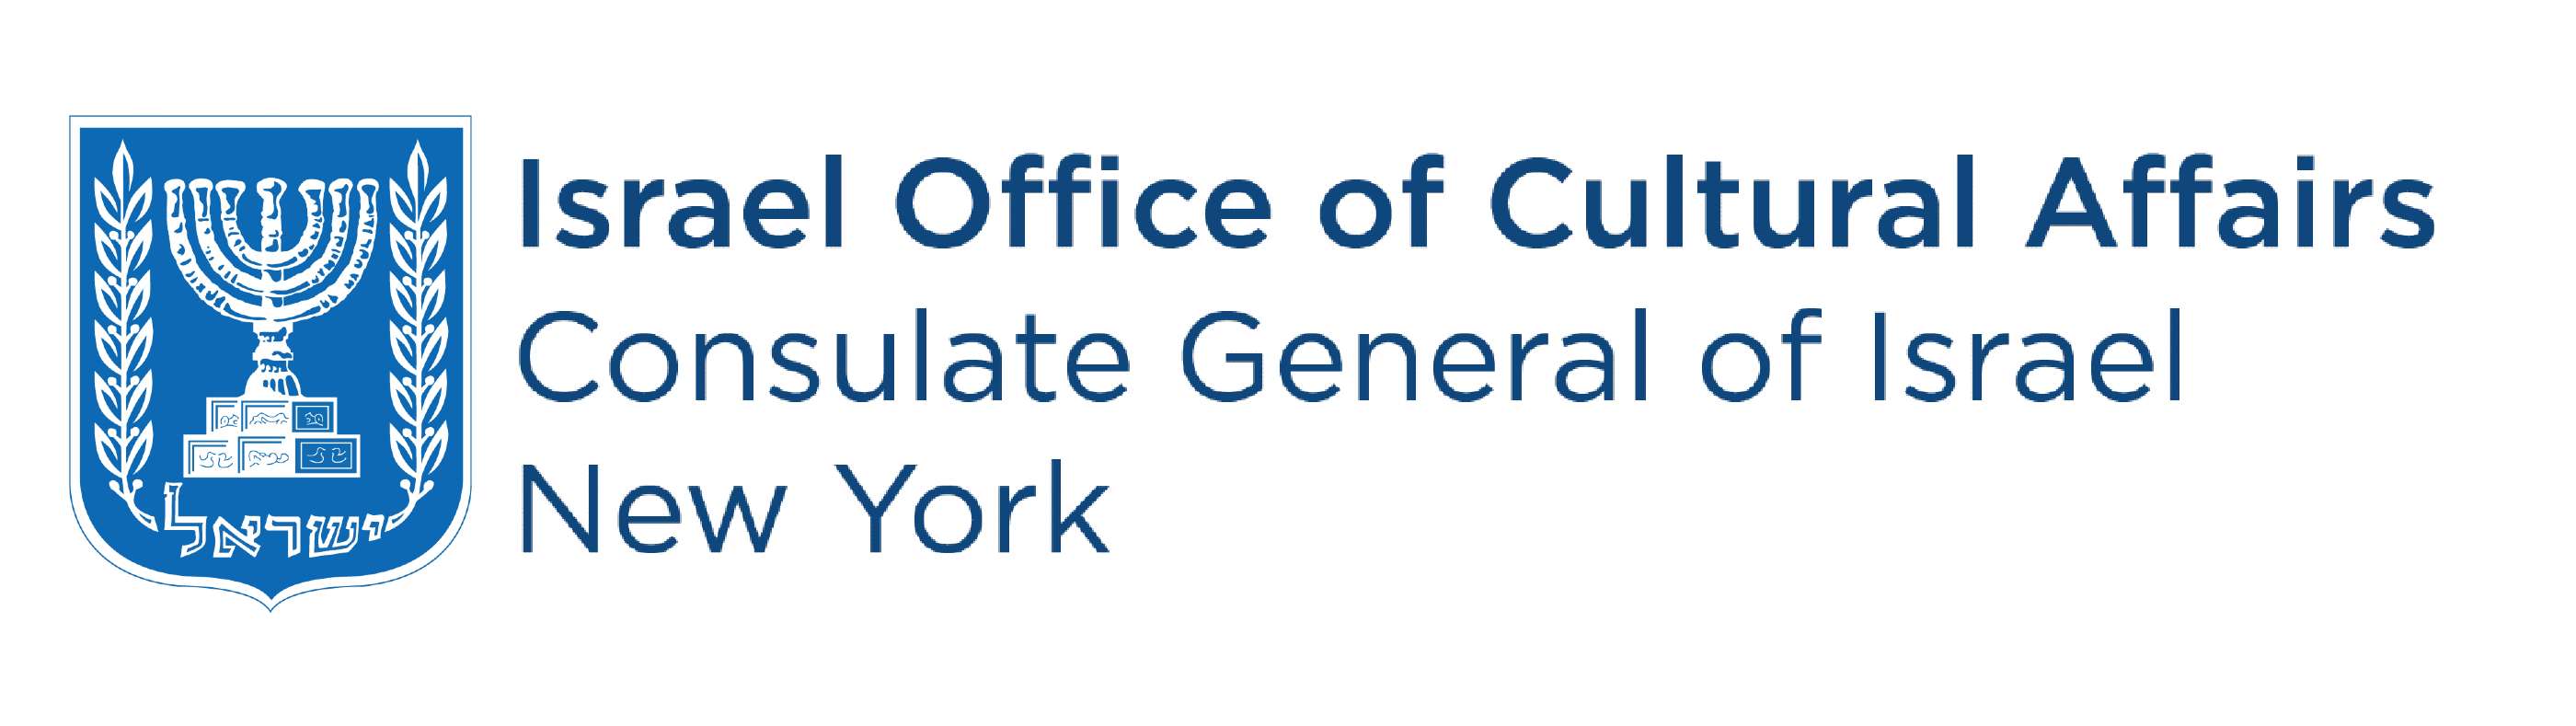 Israel Office of Cultural Affairs, Consulate General of Israel in New York